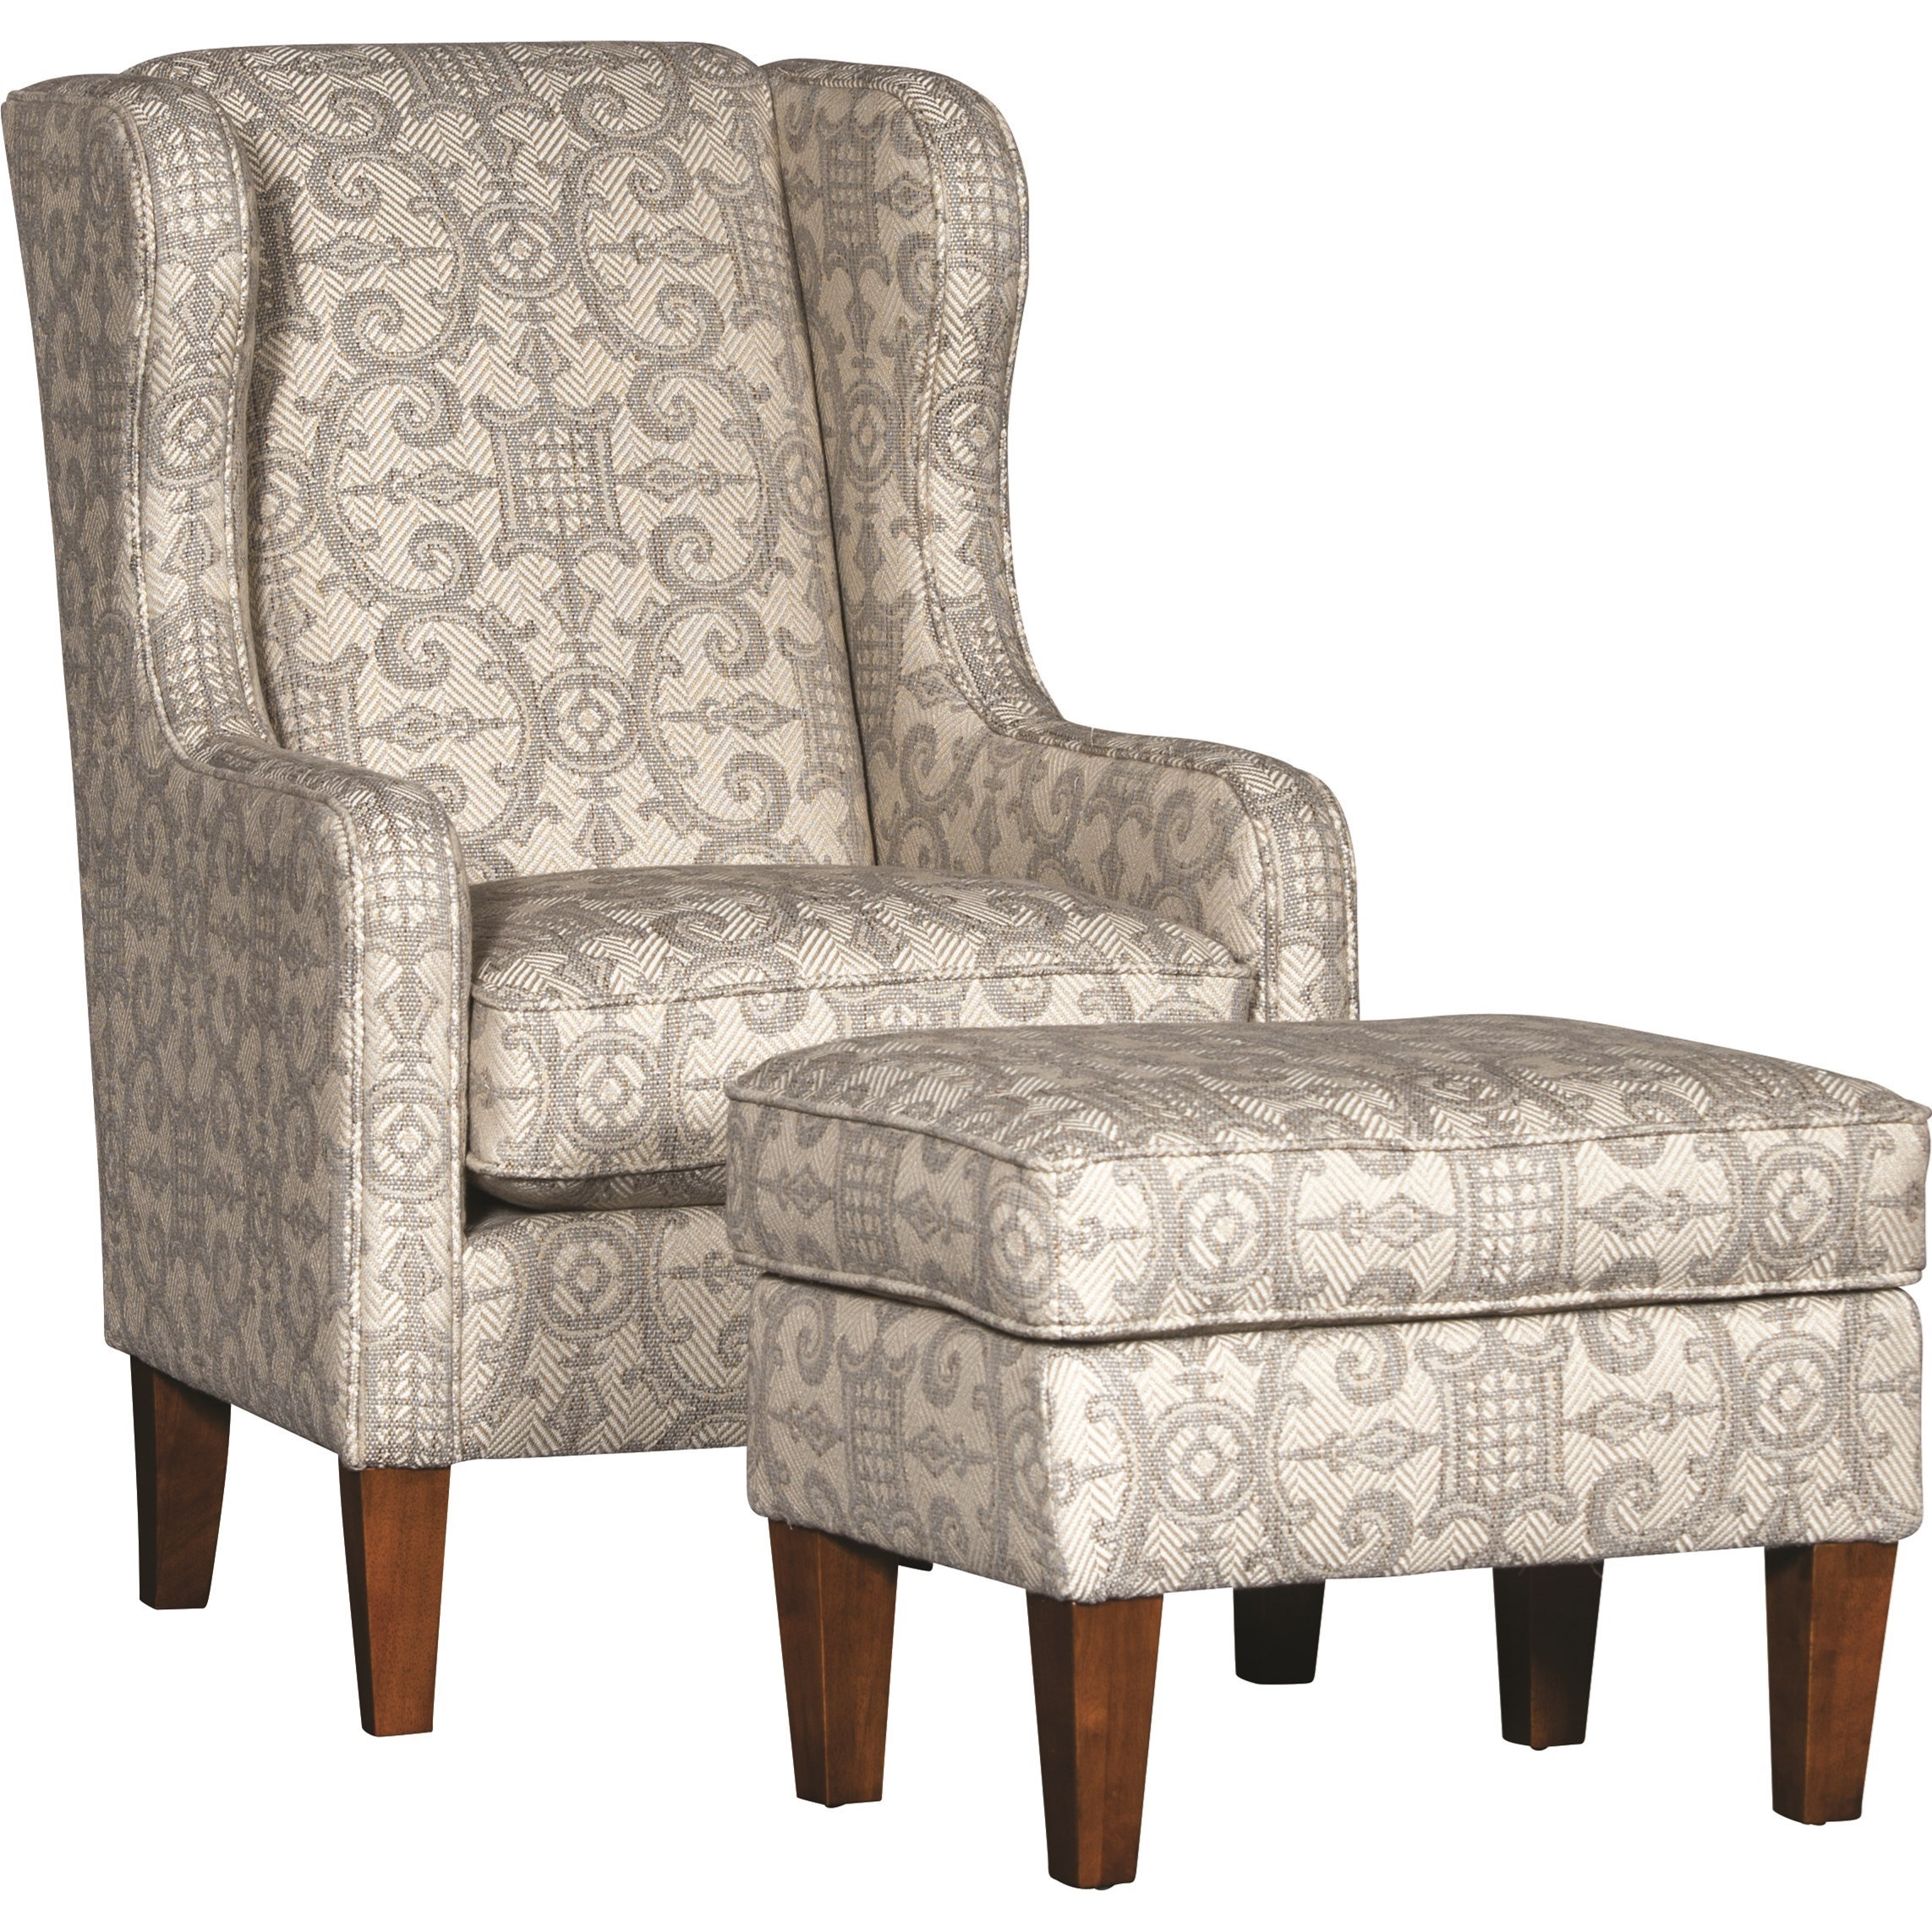 5520 Chair and Ottoman by Mayo at Wilcox Furniture